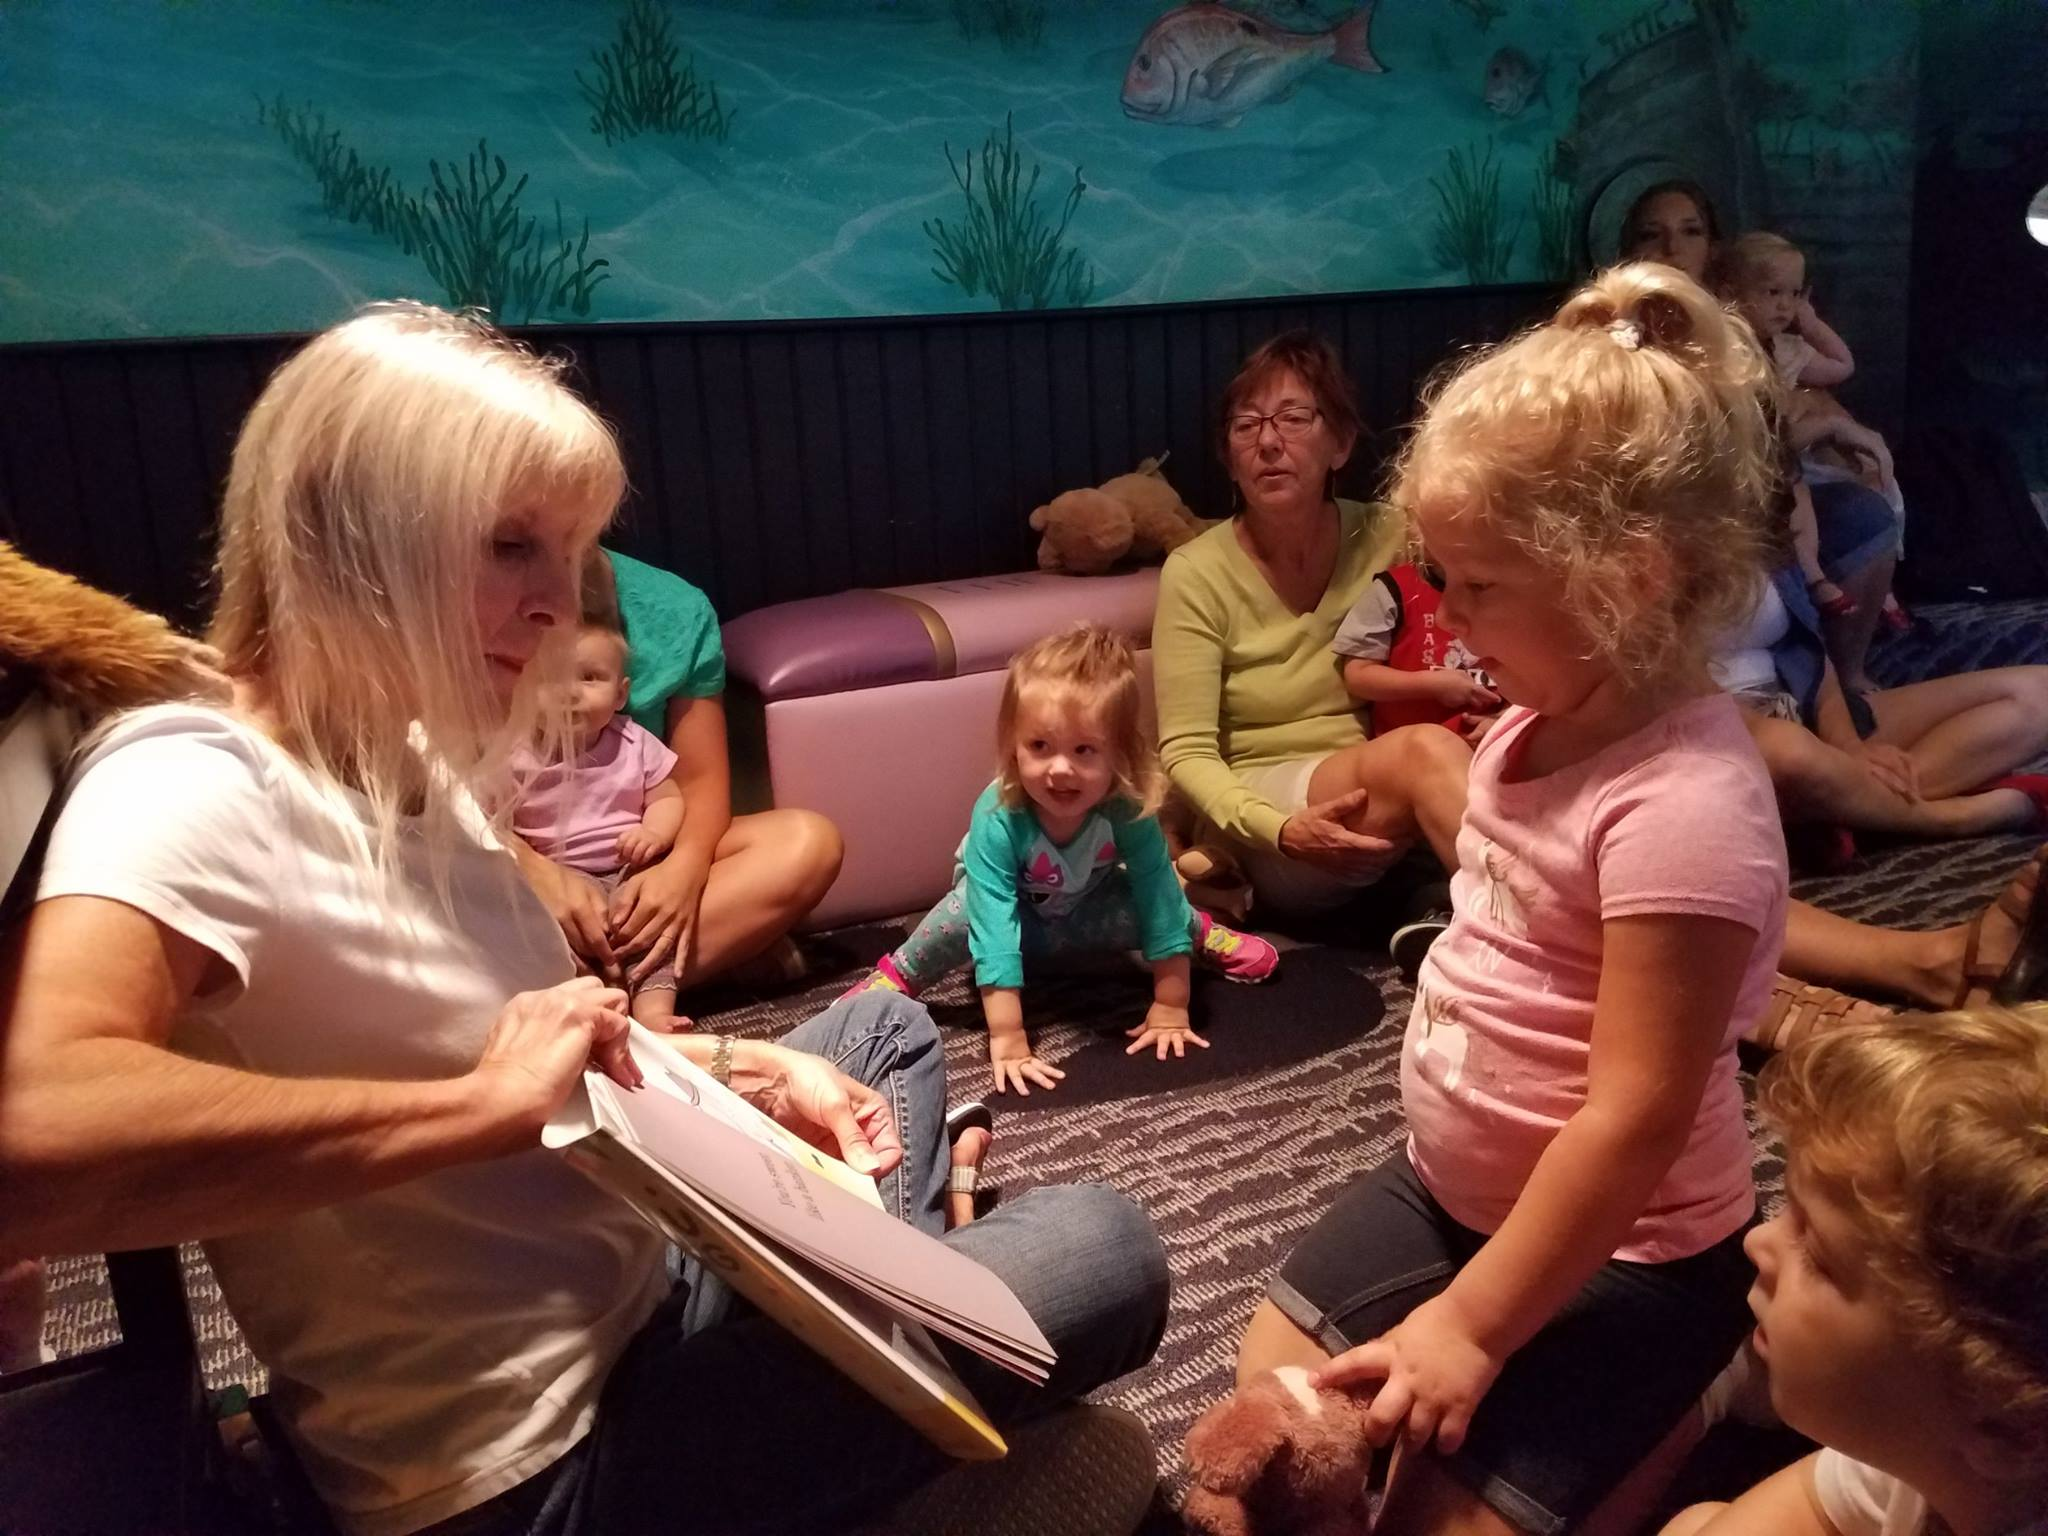 A woman holding a book reading to children